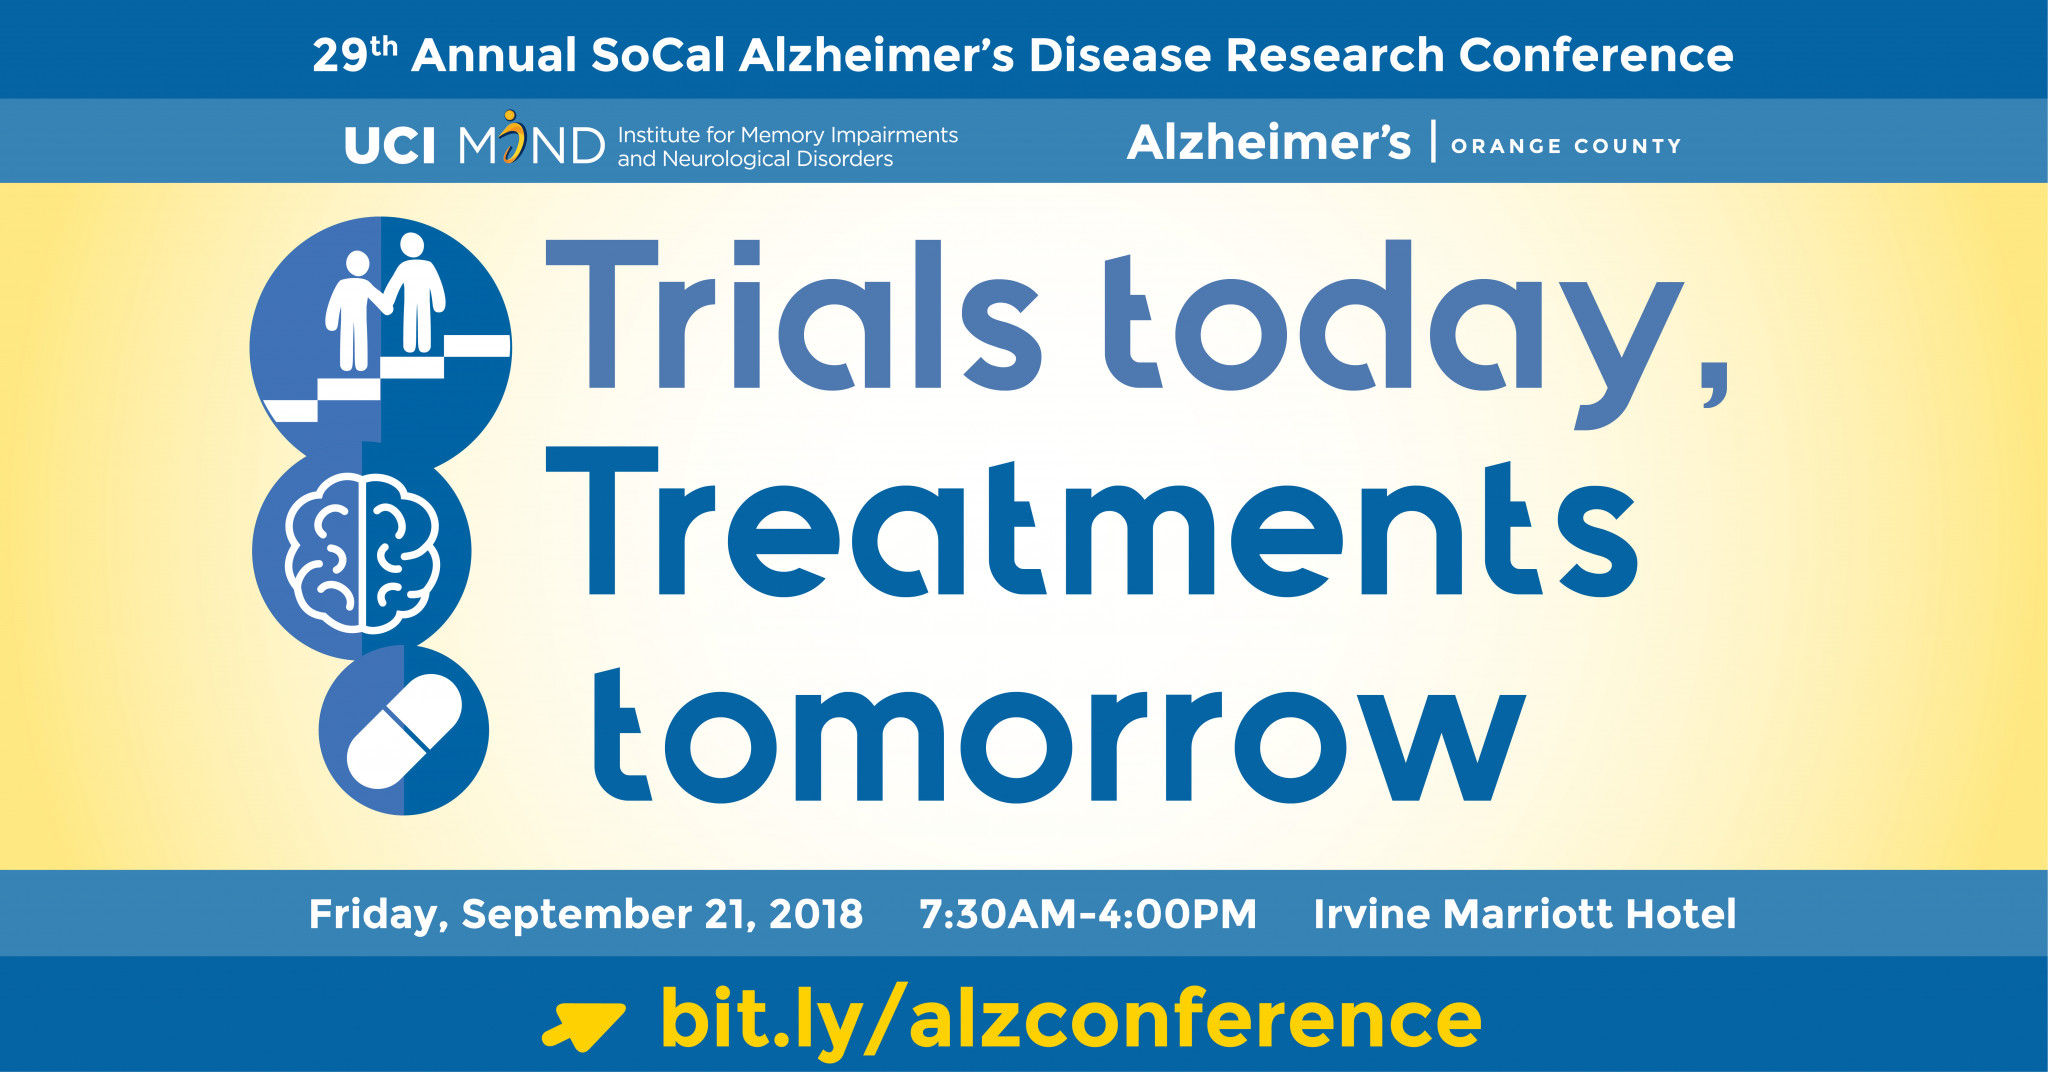 29th Annual SoCal Alzheimer's Disease Research Conference: Trials